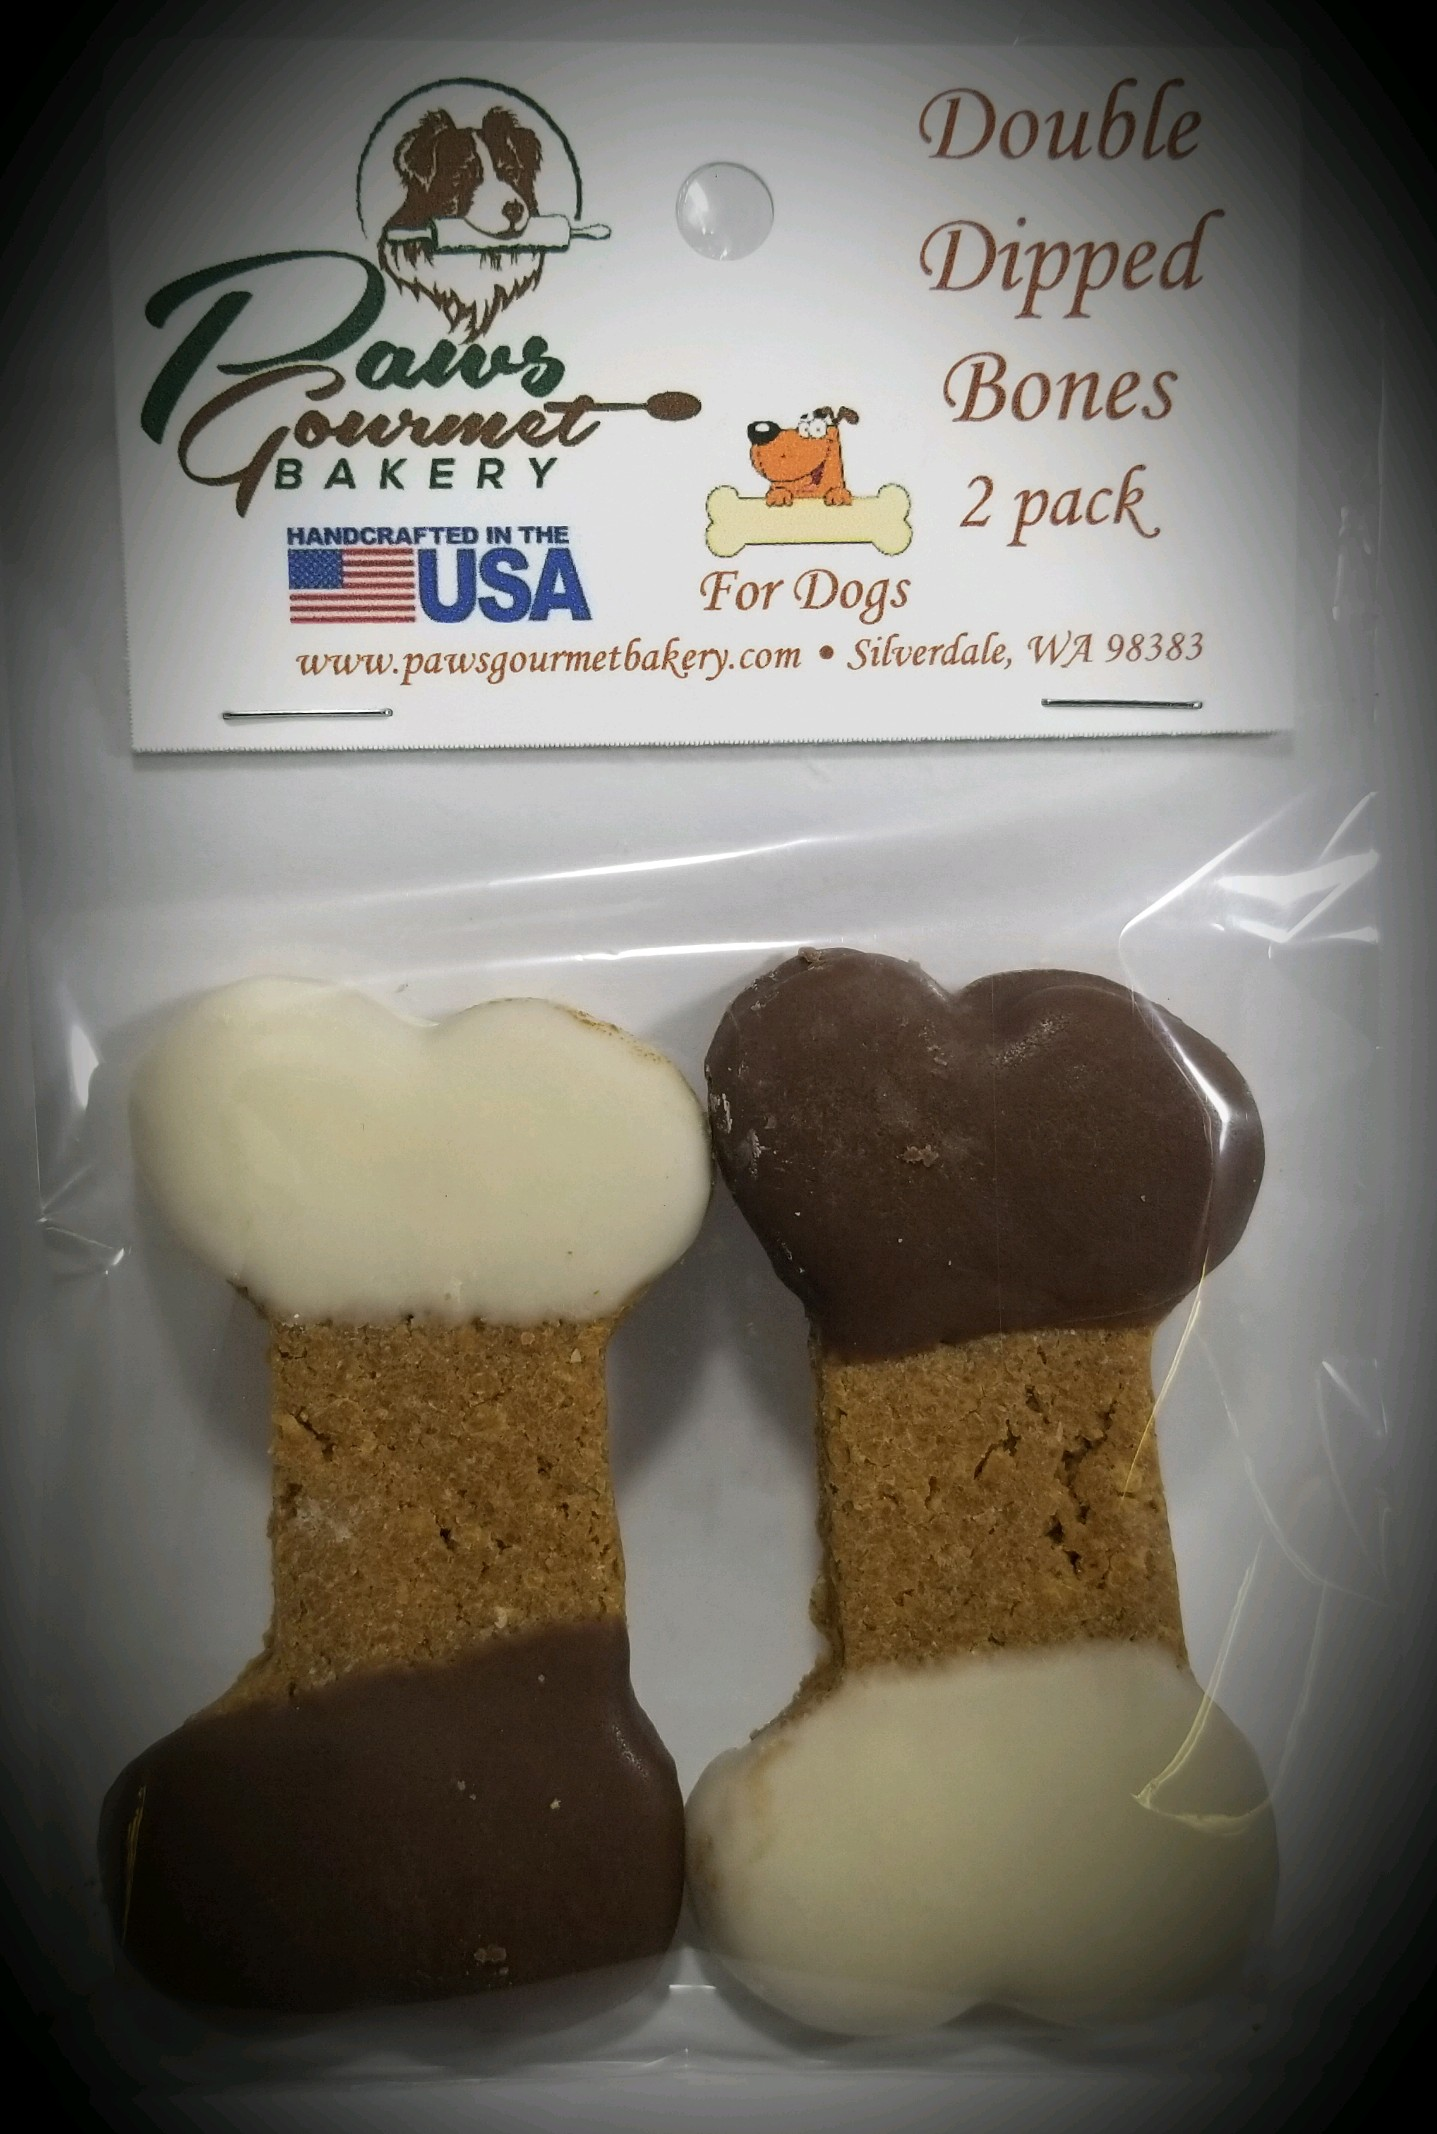 Double Dipped Bones 2 Pack - Box of 6